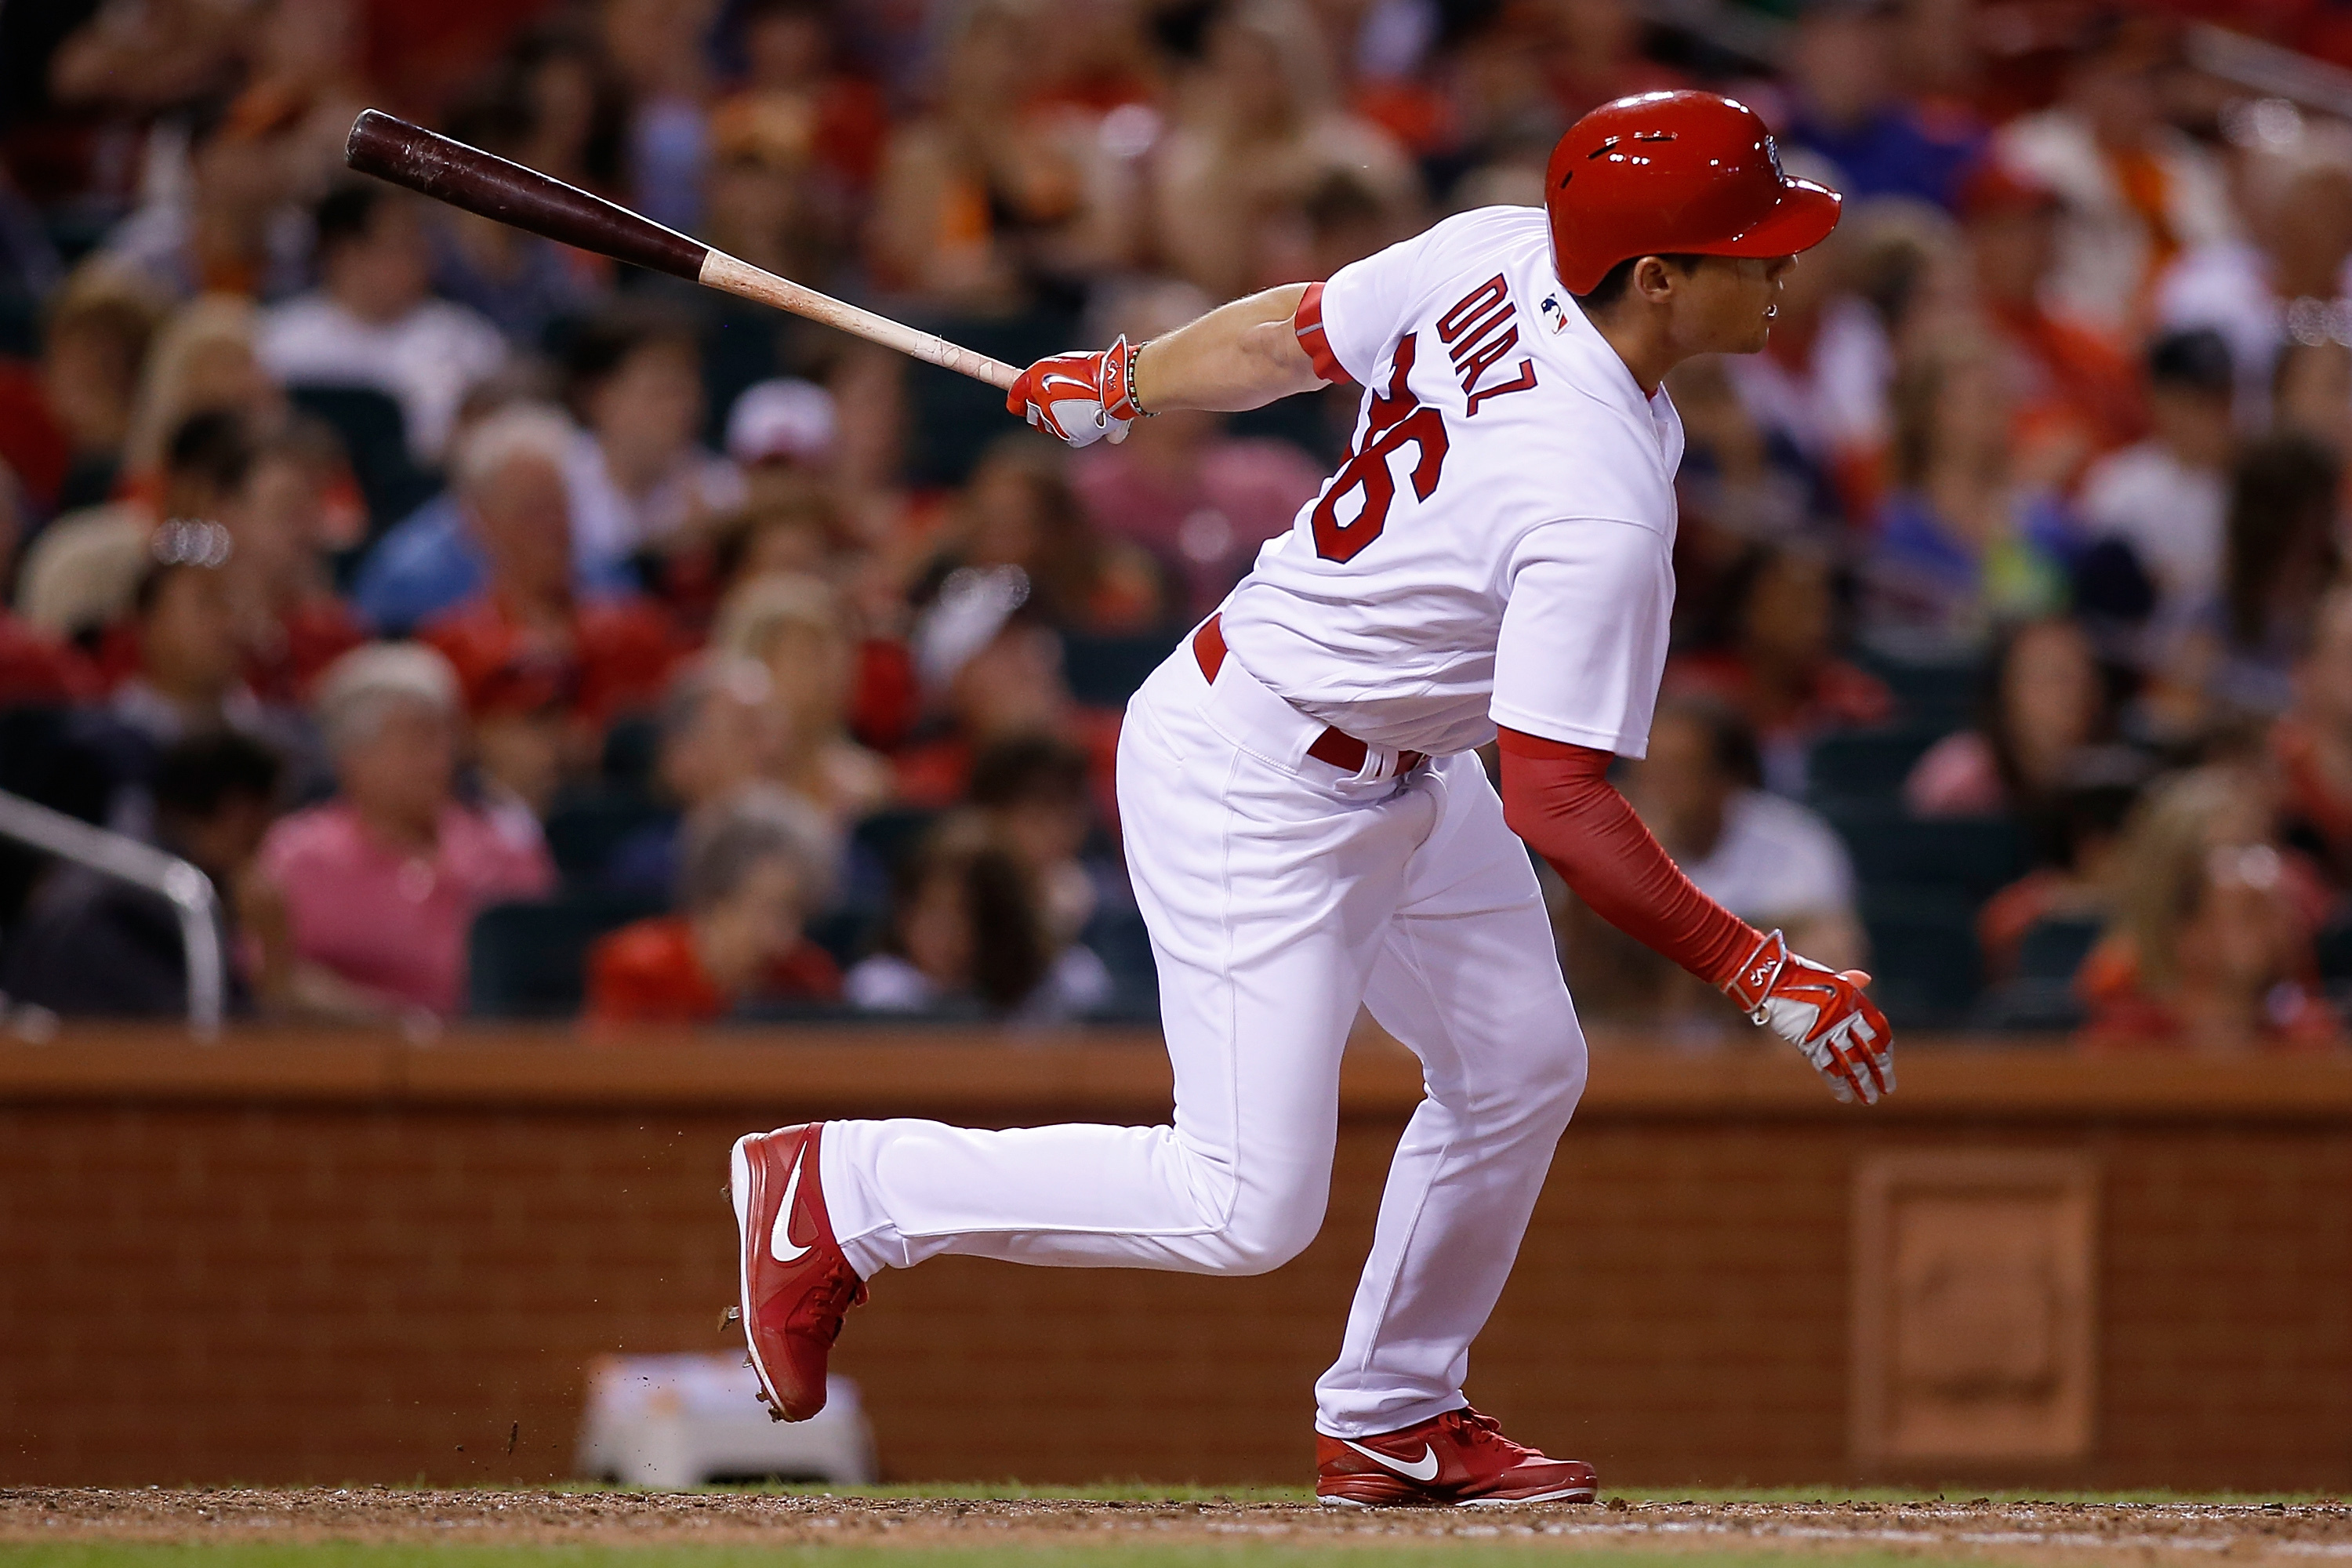 St. Louis Cardinals' Aledmys Diaz follows through on a RBI double during the sixth inning of a baseball game against the San Francisco Giants, Sunday, June 5, 2016 in St. Louis. (AP Photo/Scott Kane)